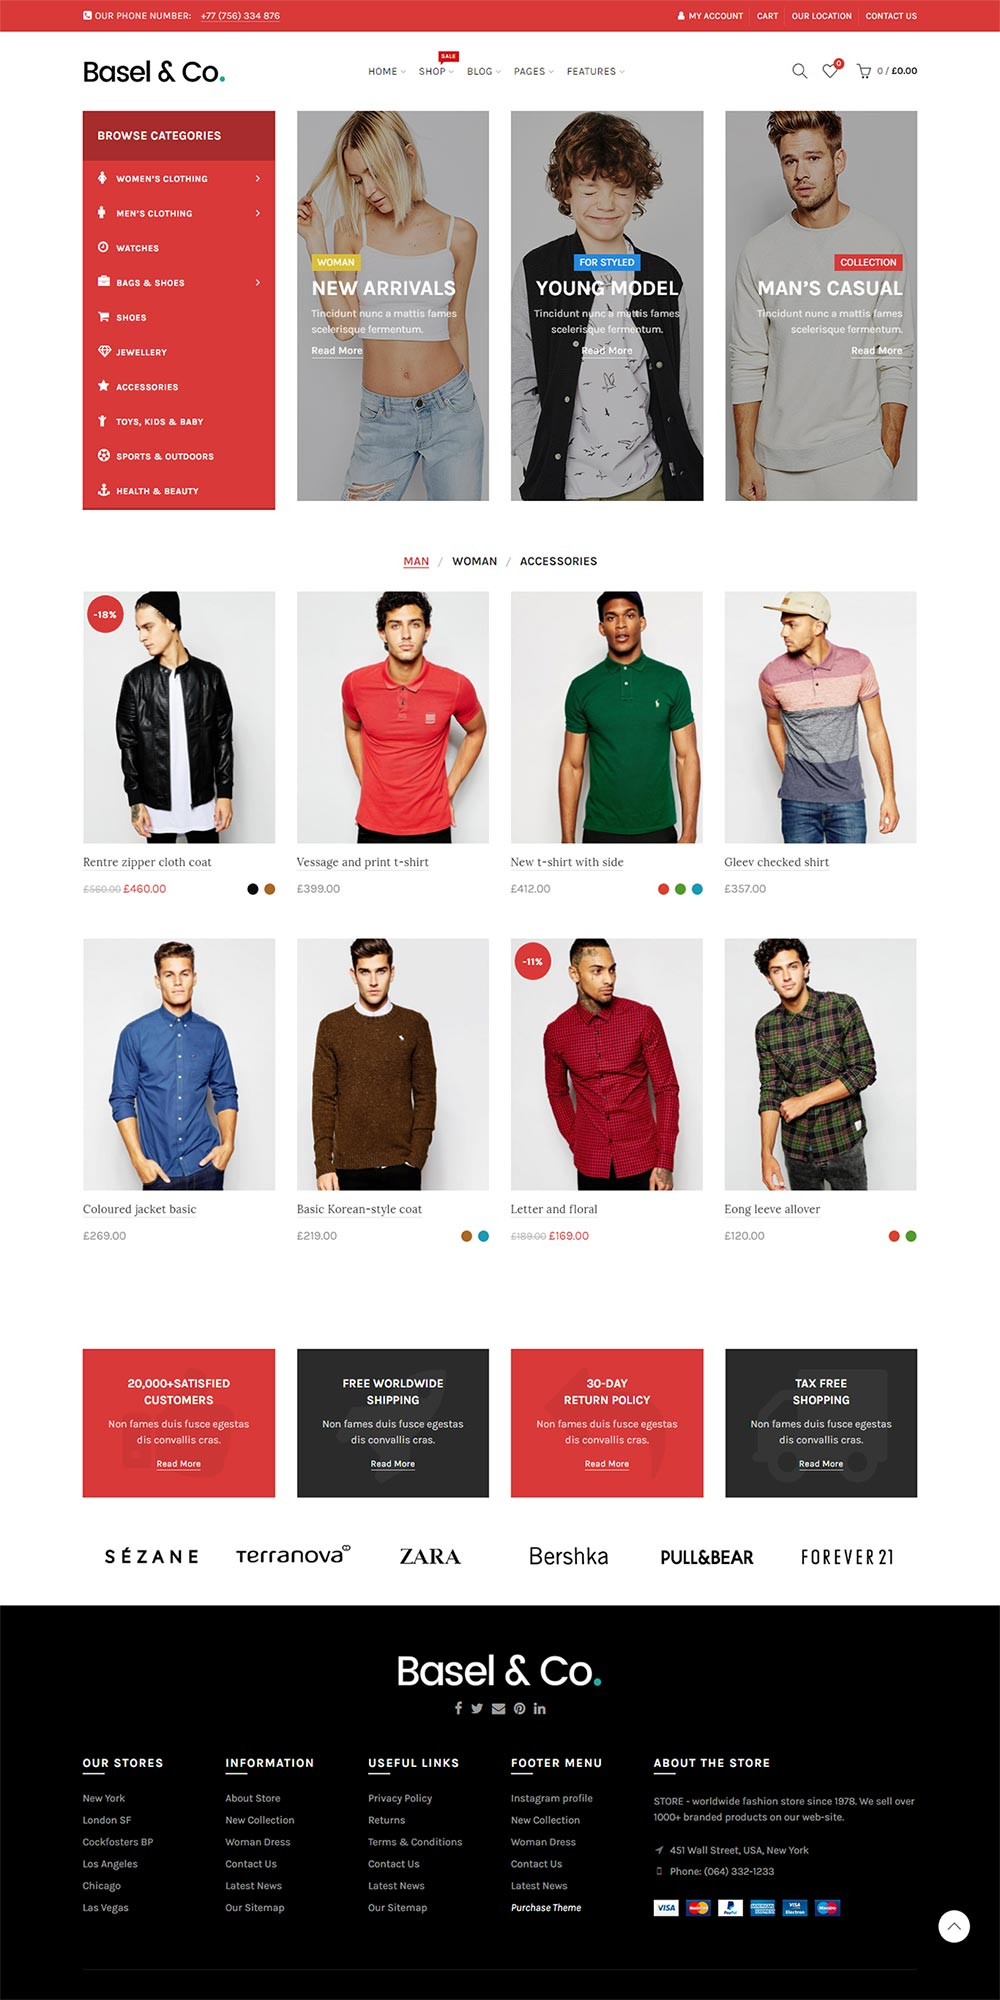 WebTech eCommerce Website Design and Development in Uttara, Dhaka, Bangladesh